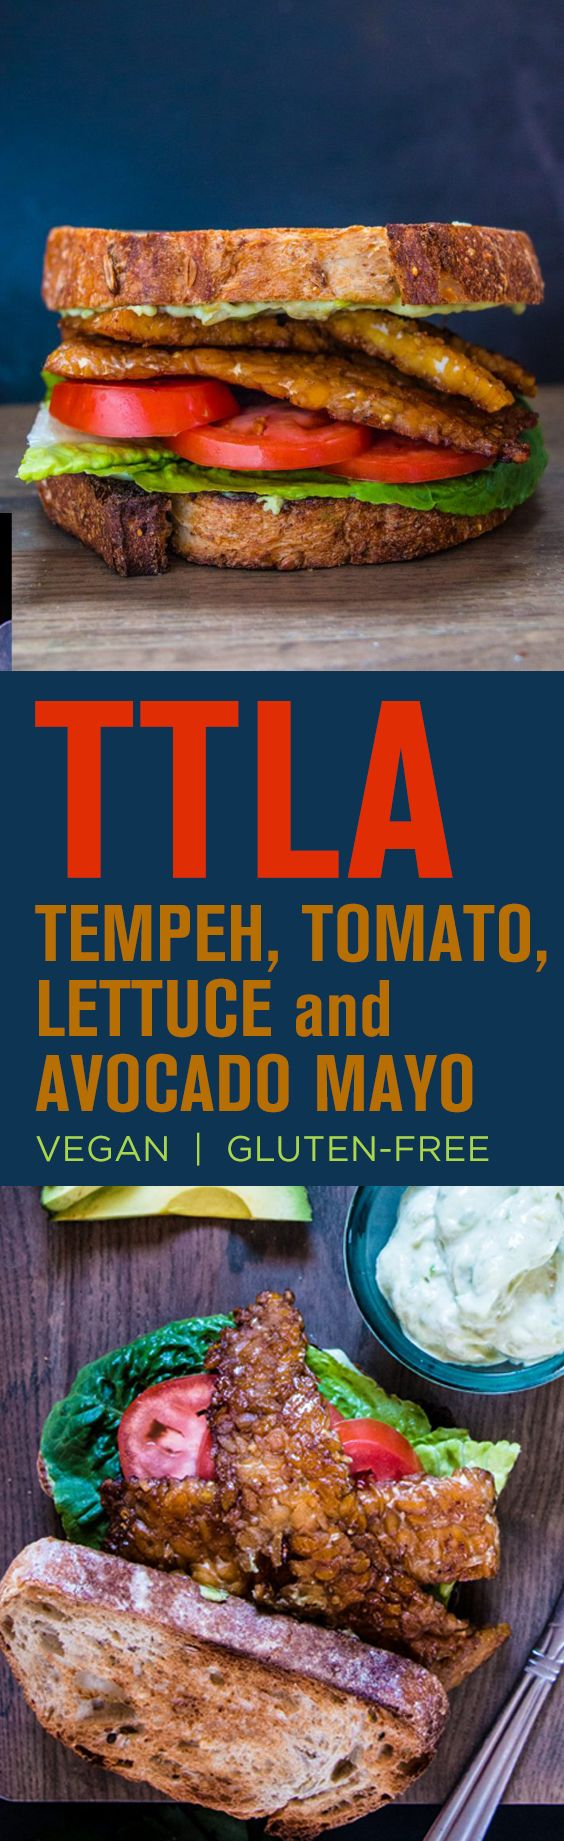 Take the TTLA Challenge with this Tempeh Bacon, Tomato, Lettuce and Avocado Mayo sandwich. It's simple and super good!